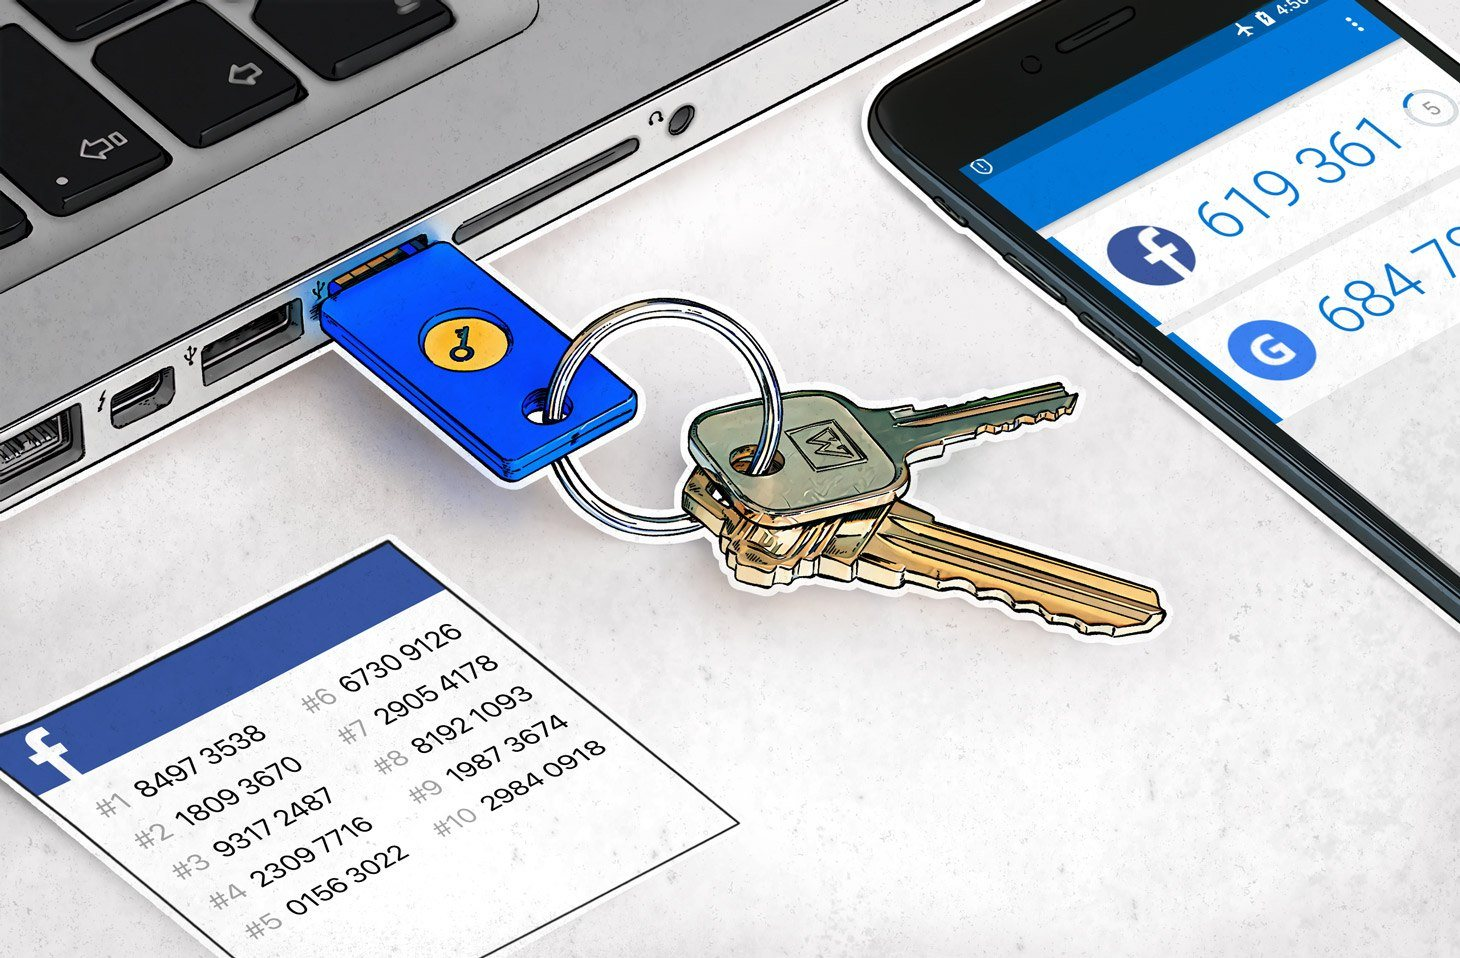 What to choose for 2-factor authentication